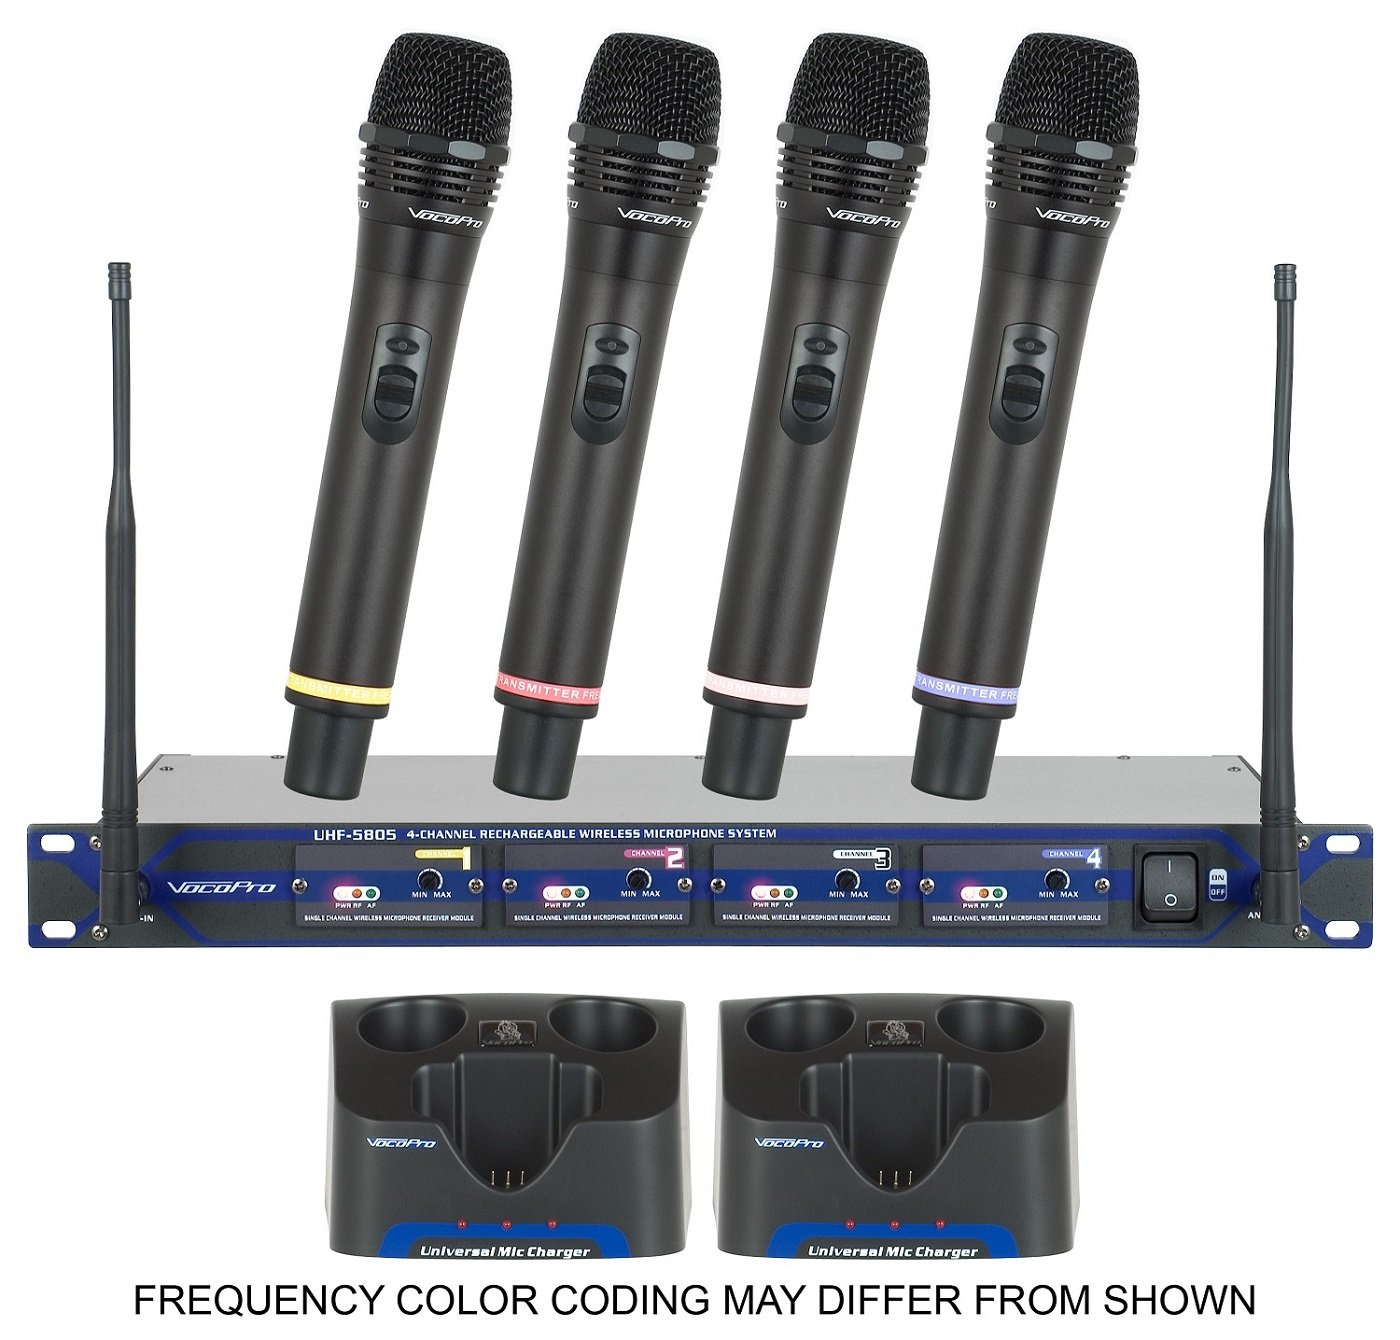 Vocopro UHF 5805 4 Ch Rechargeable Wireless Microphone System 900MHz